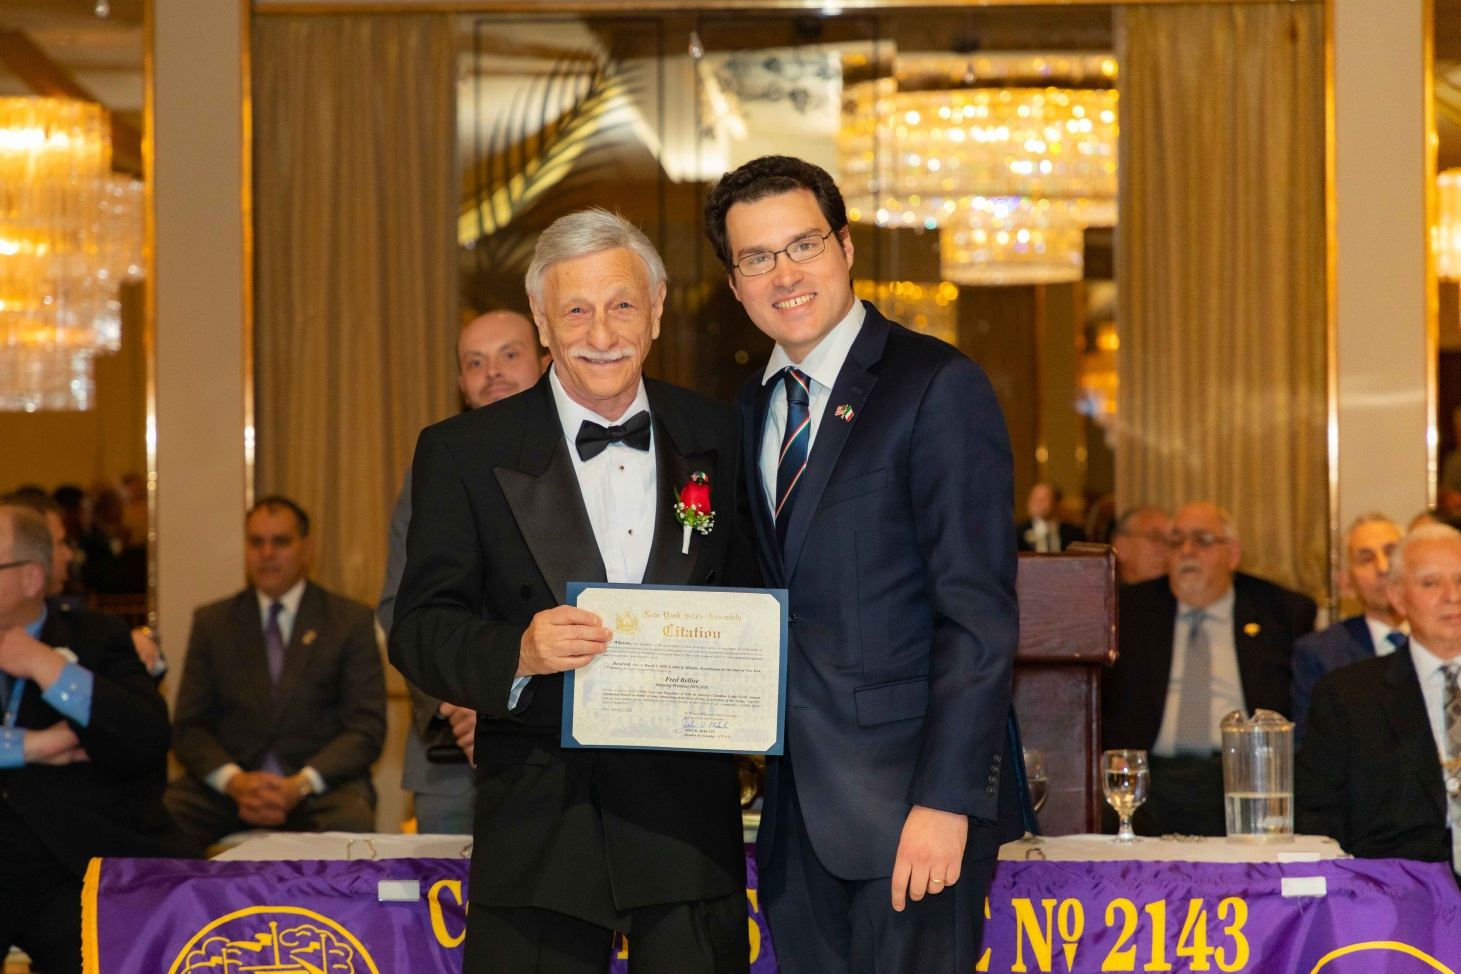 Assemblyman John Mikulin (R,C,I-Bethpage) presents Fred Bellise, outgoing president of the Sons of Italy Columbus Lodge 2143, with a citation at their installation ceremony on Sunday, March 1 at the R